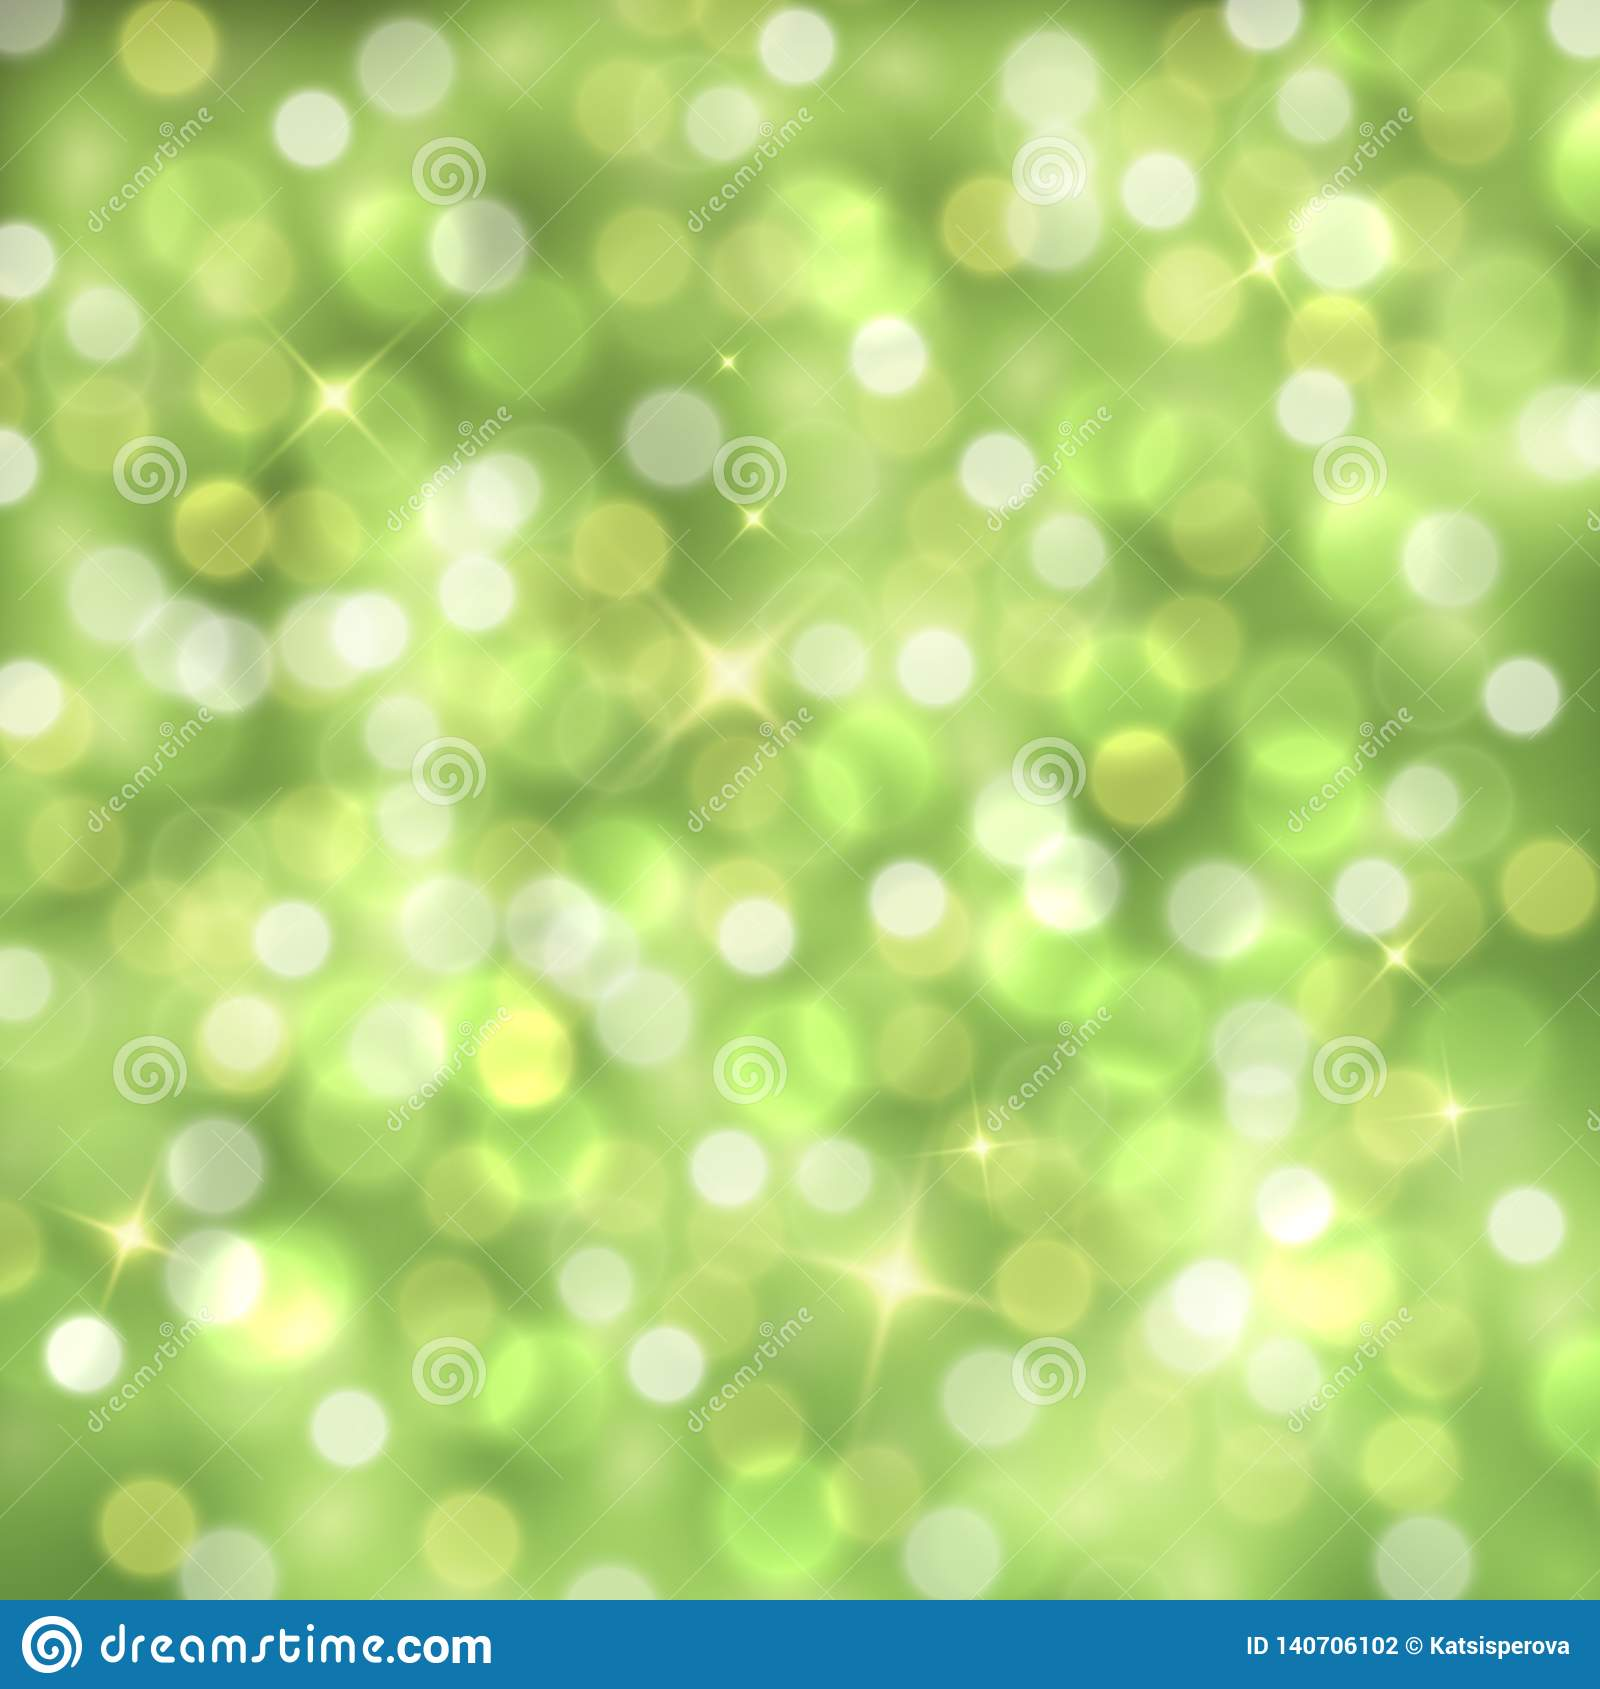 Vector abstract green sparkling background with blurred lights